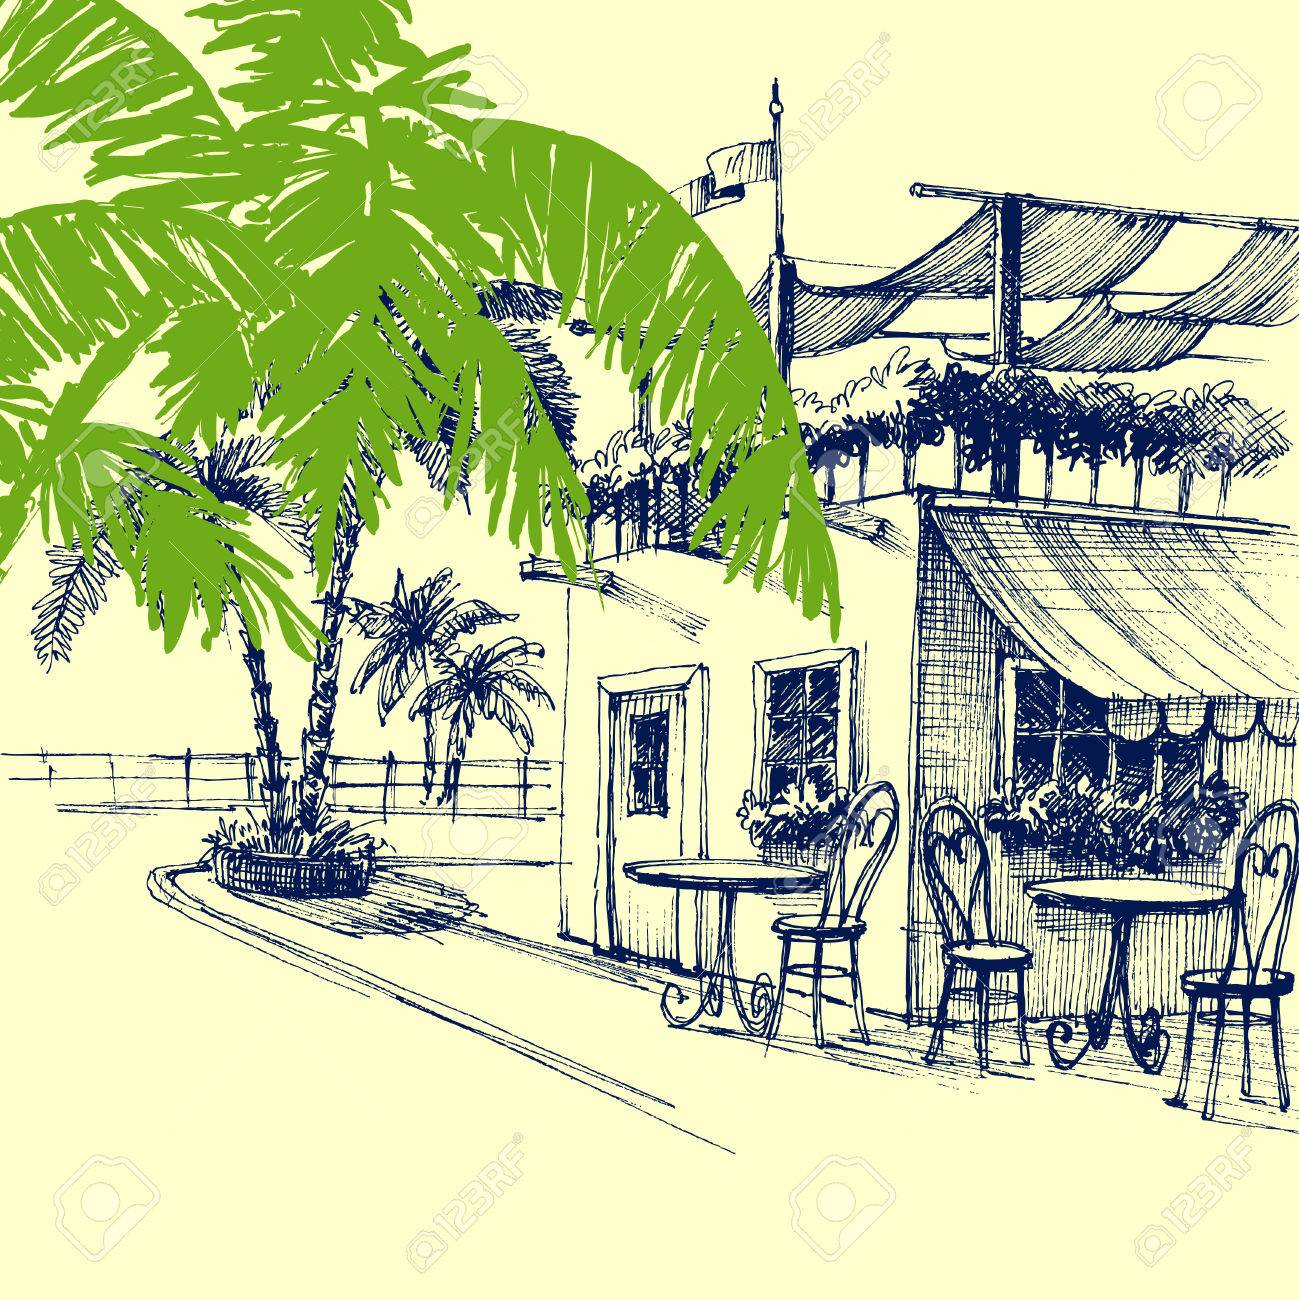 Restaurant On The Beach Terrace And Palm Trees Royalty Free Cliparts Vectors And Stock Illustration Image 58702996